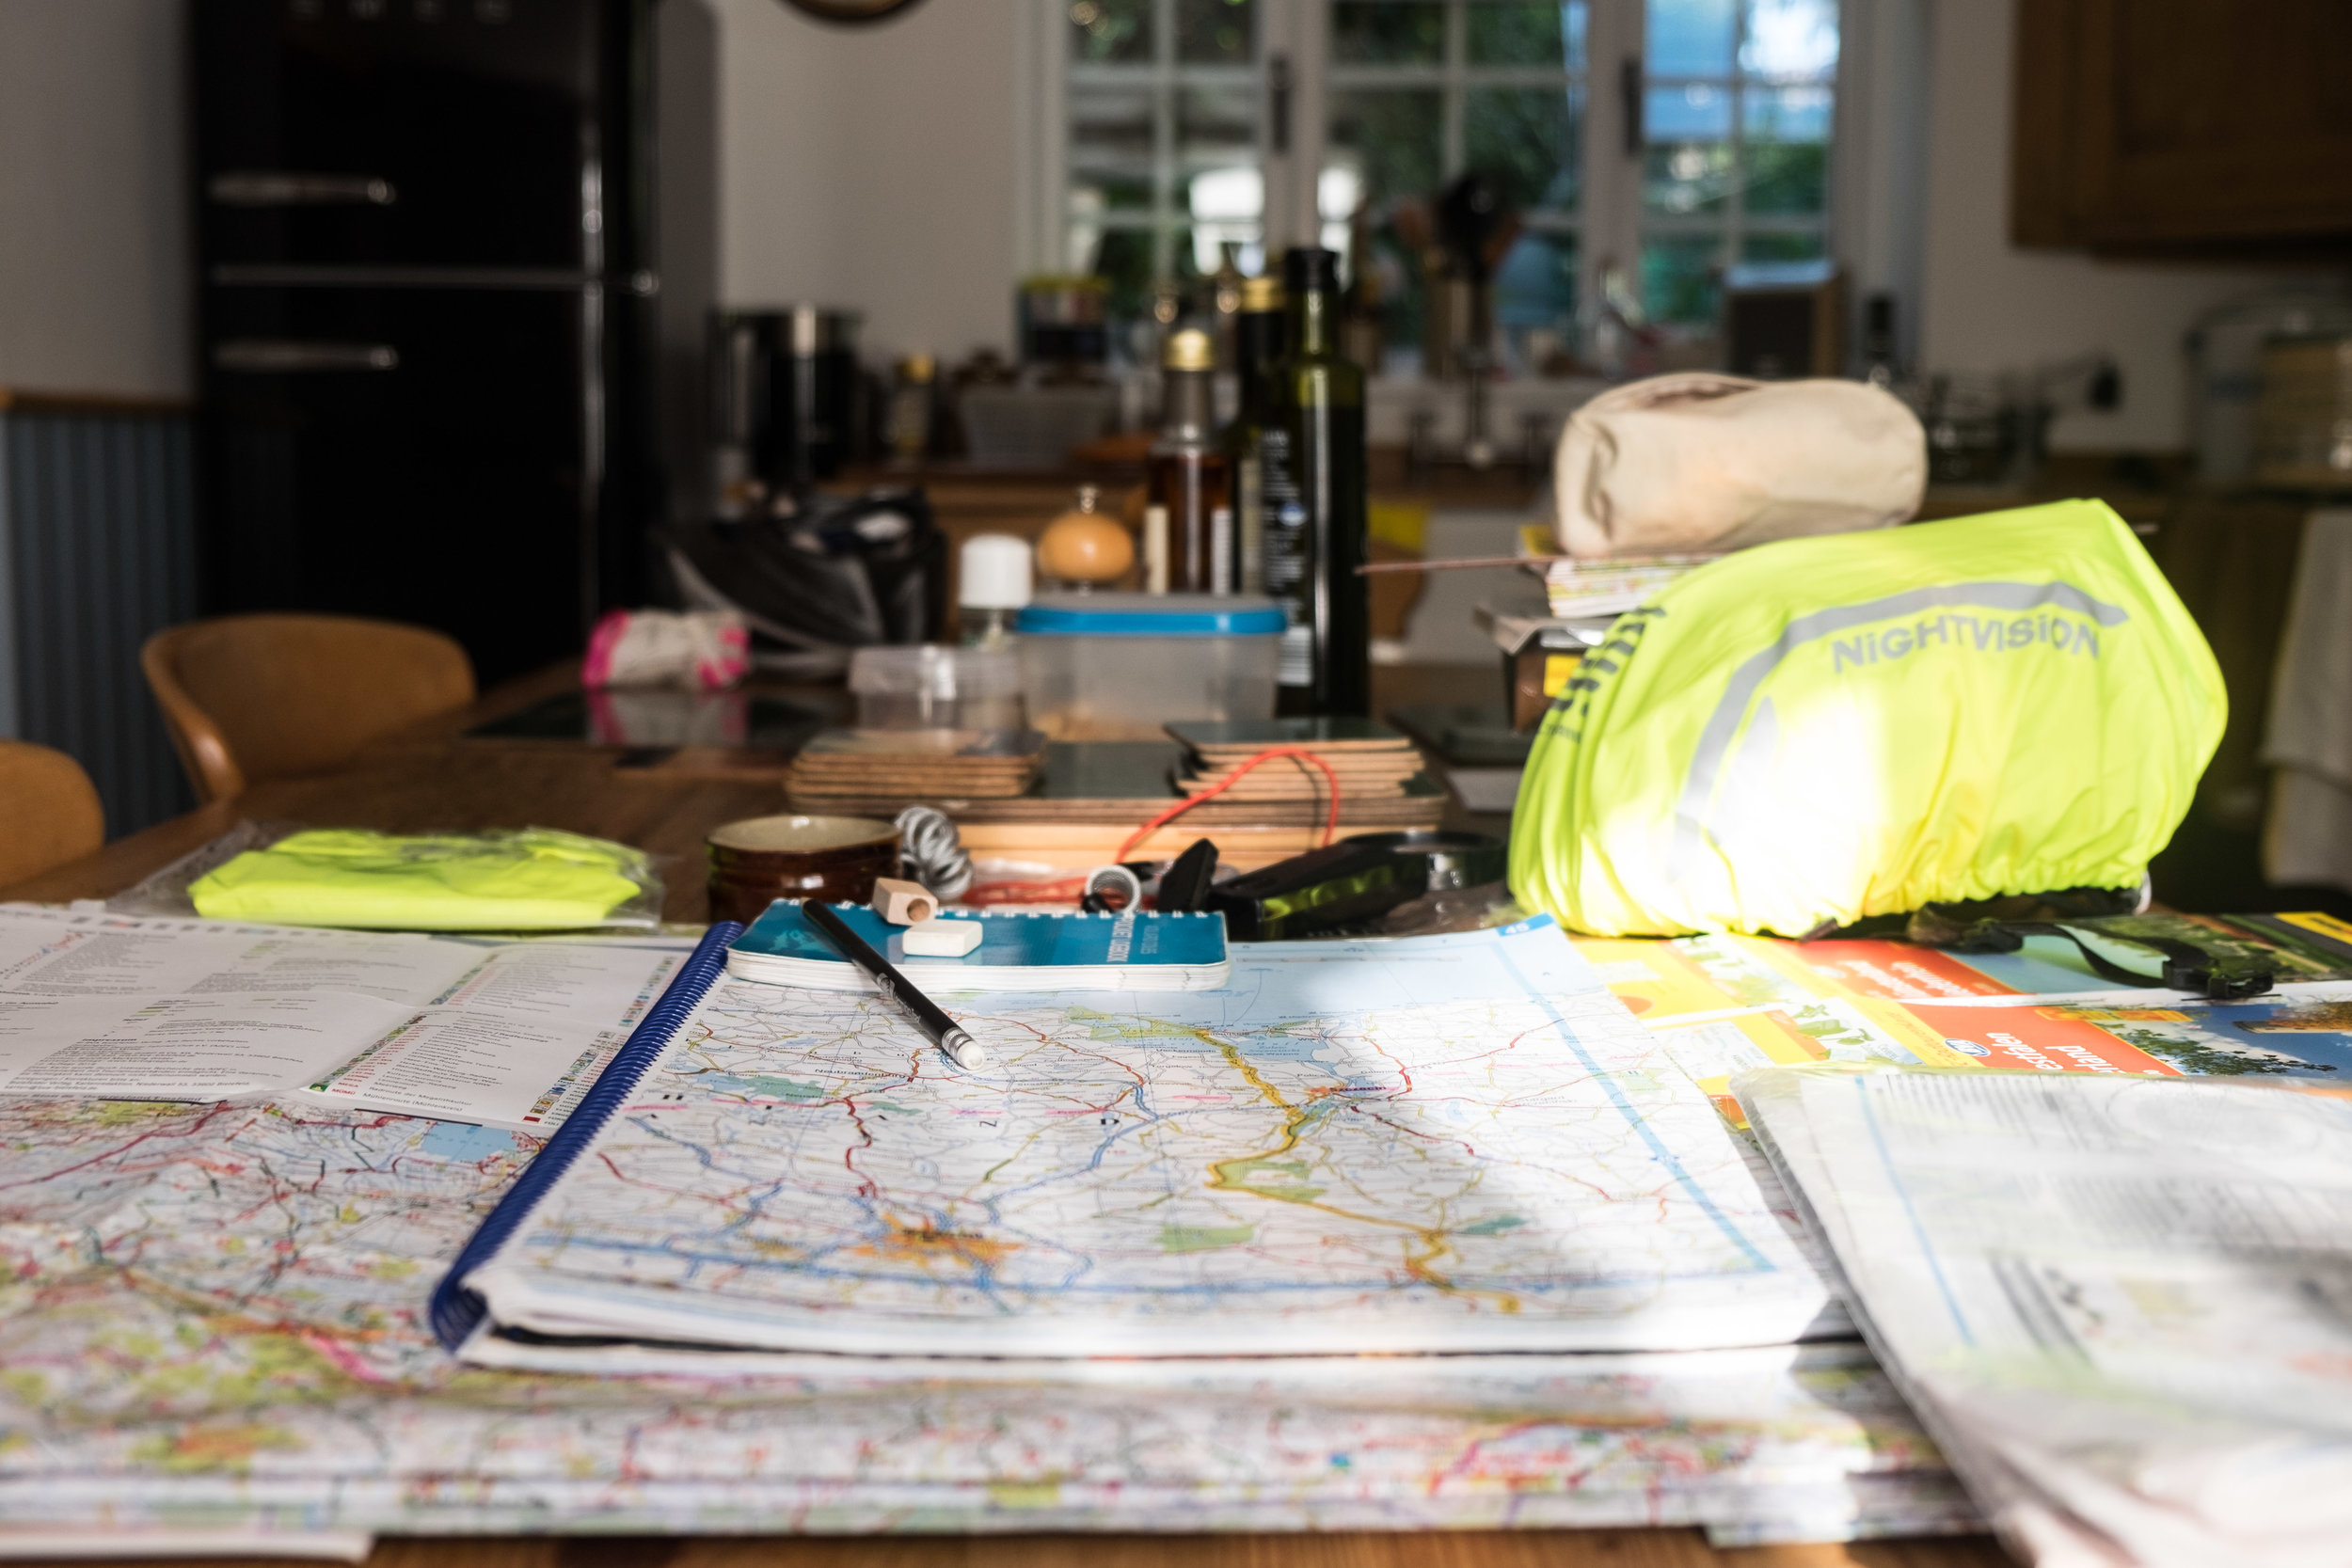 Planning a route.